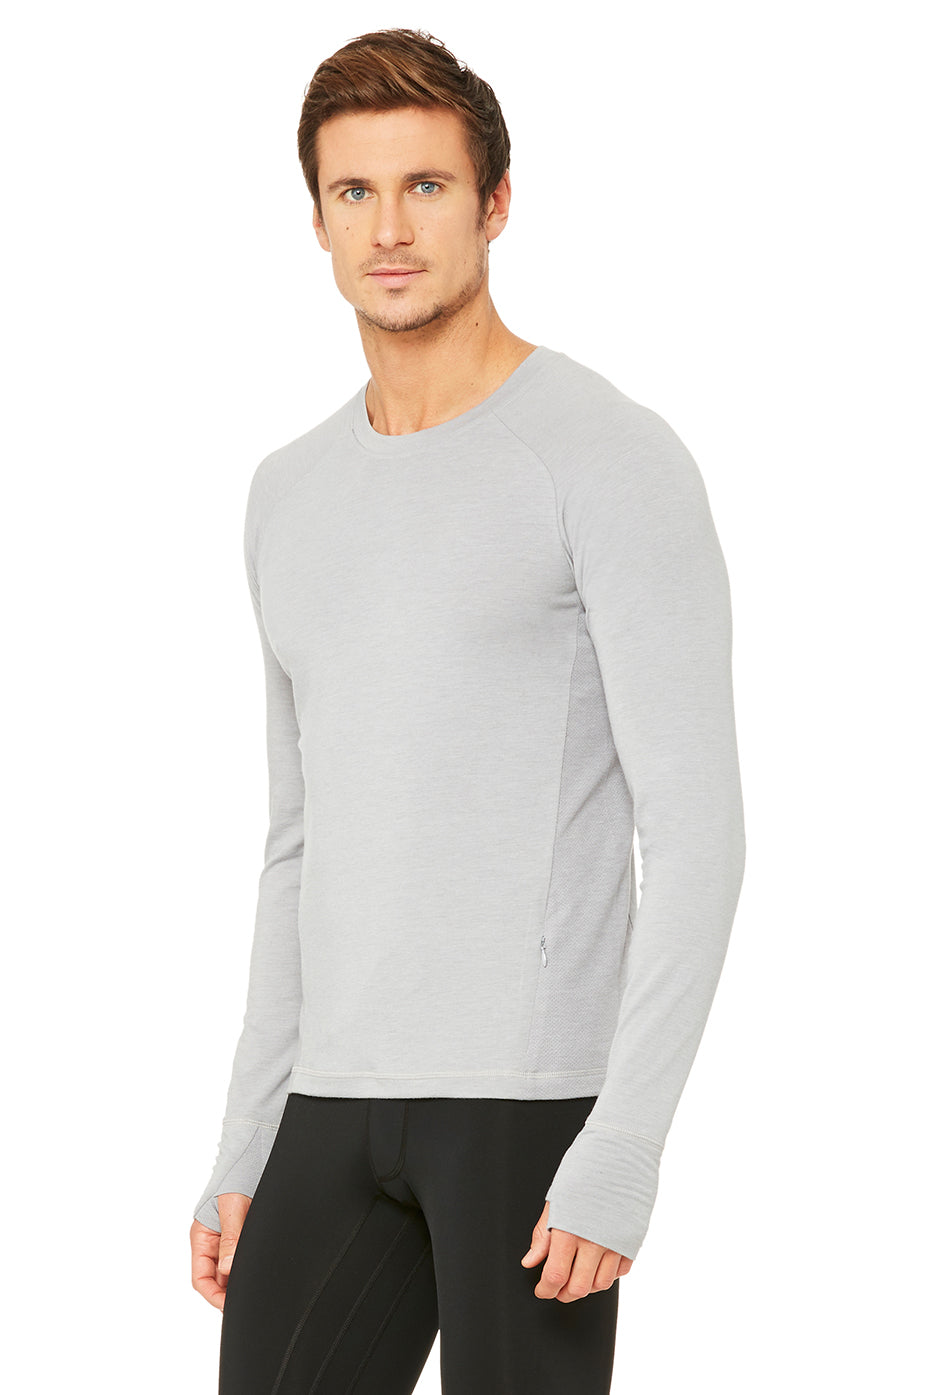 Asana Performance Long Sleeve Crew